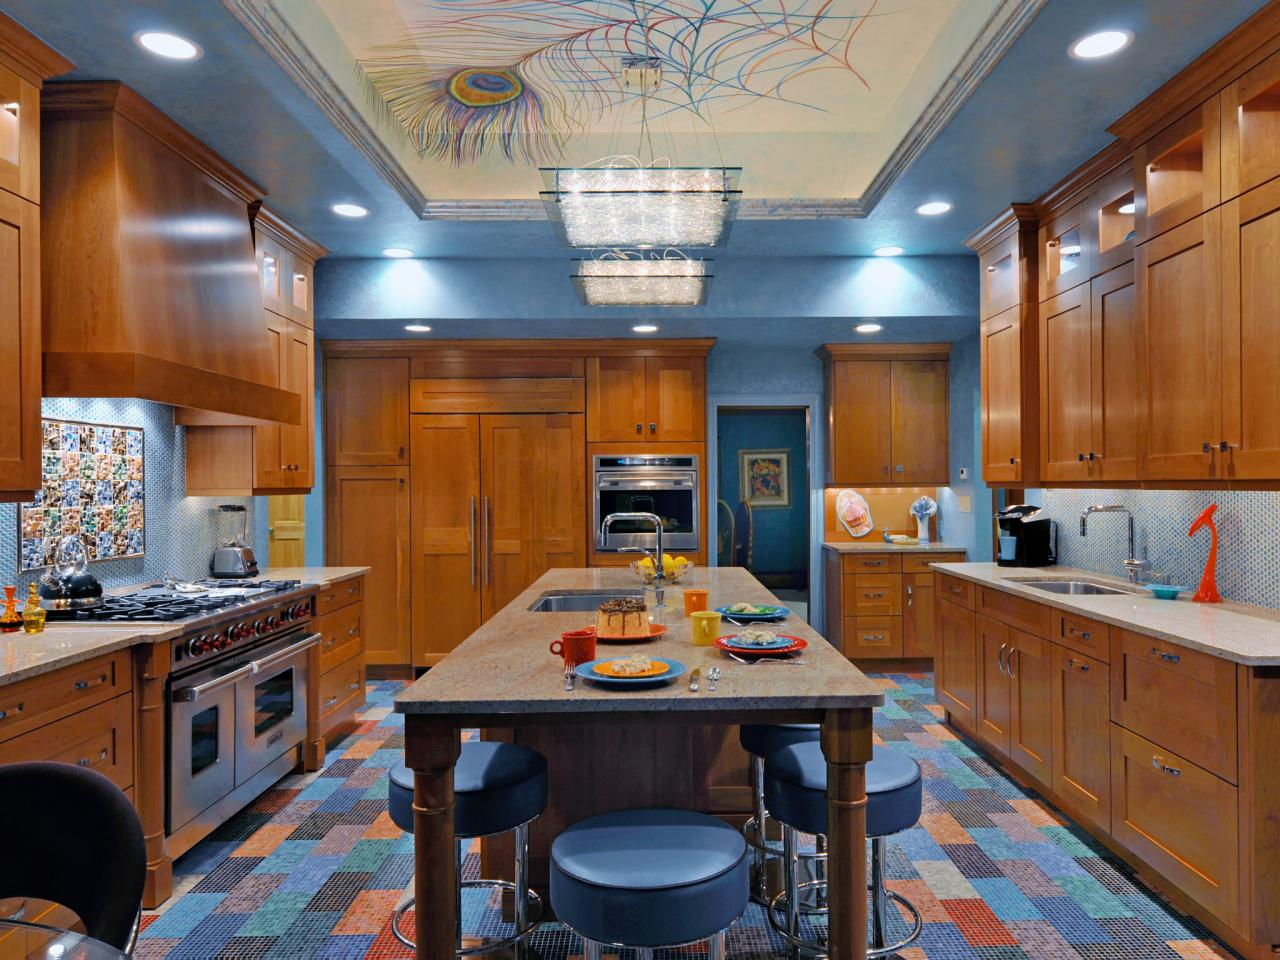 Paint ideas for kitchens pictures ideas tips from hgtv Blue kitchen paint color ideas